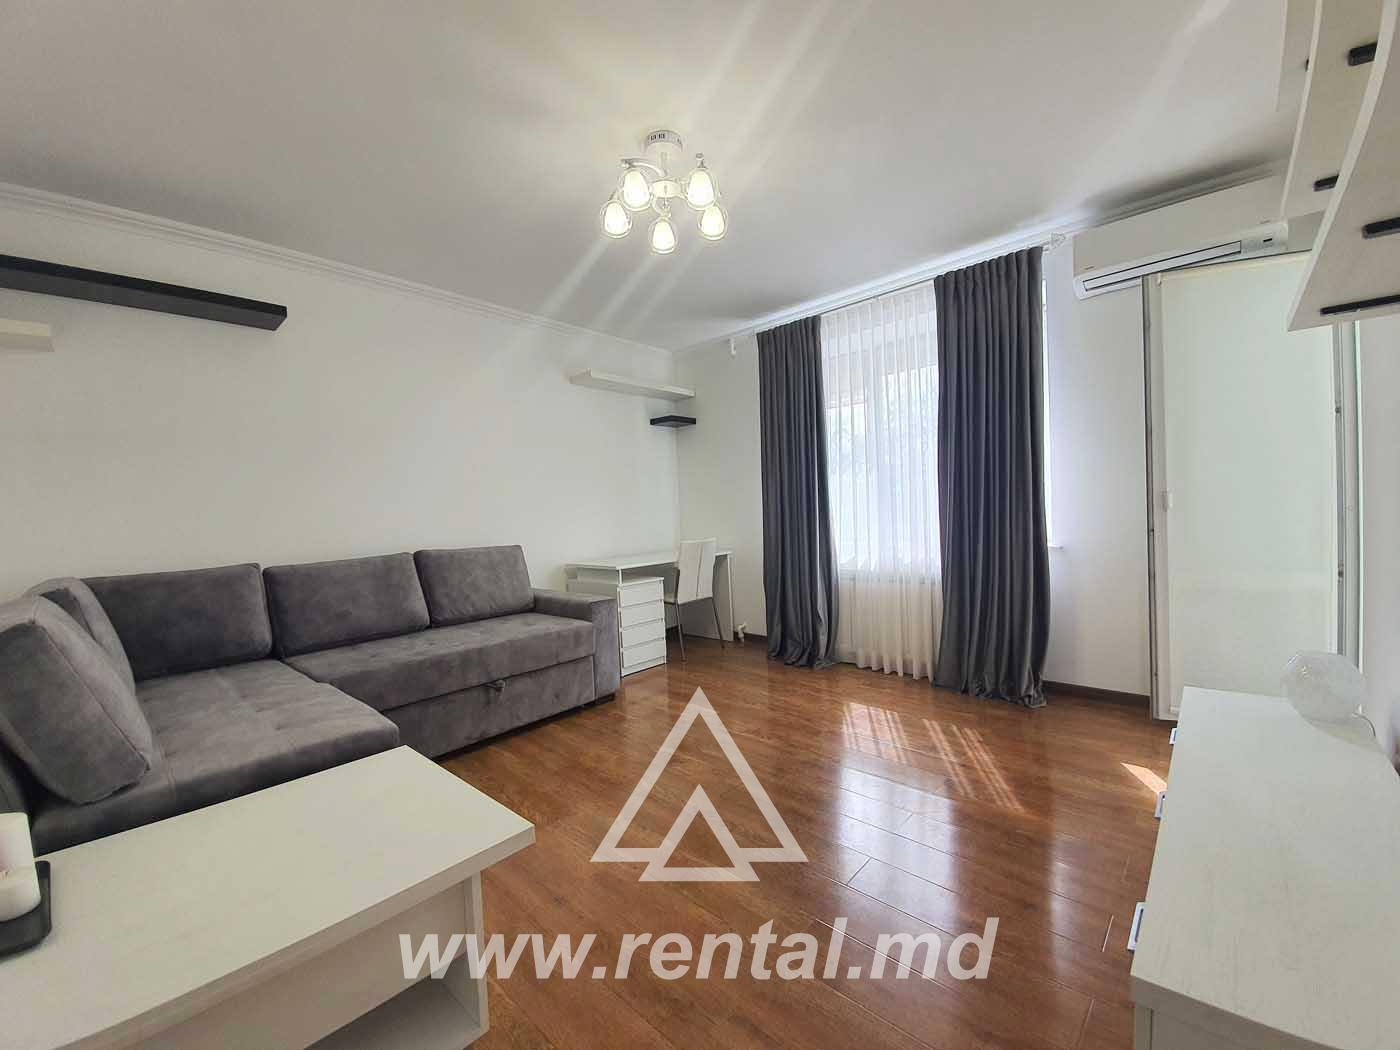 Centrally located apartment for rent